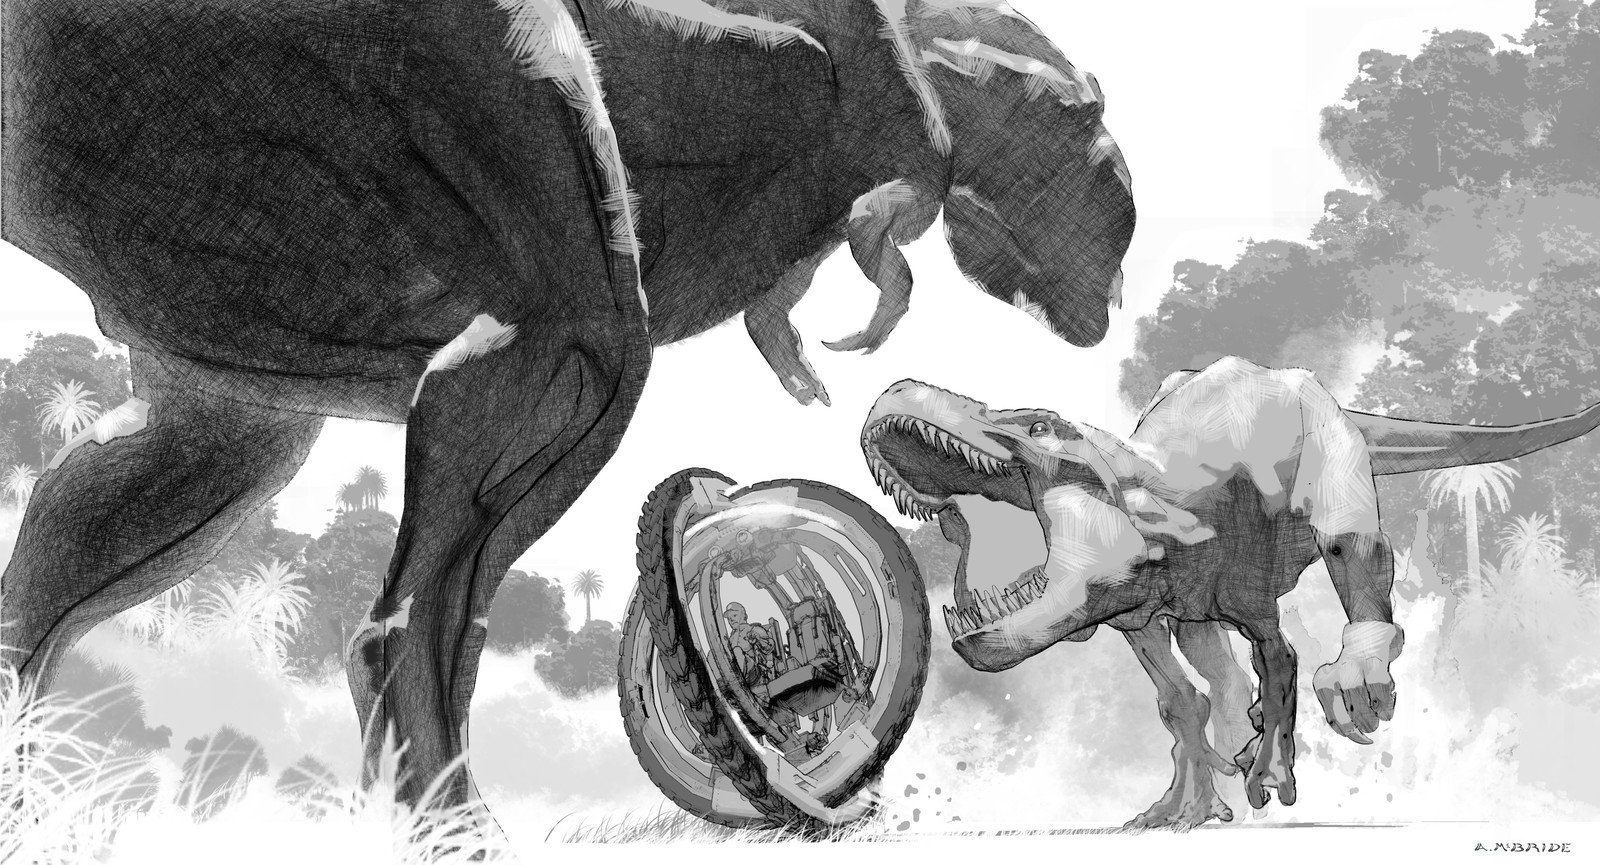 Jurassic World. Early rough sketch of the Diabolous Rex ( D.Rex ) squaring off against a T.Rex over a park Gyrosphere.